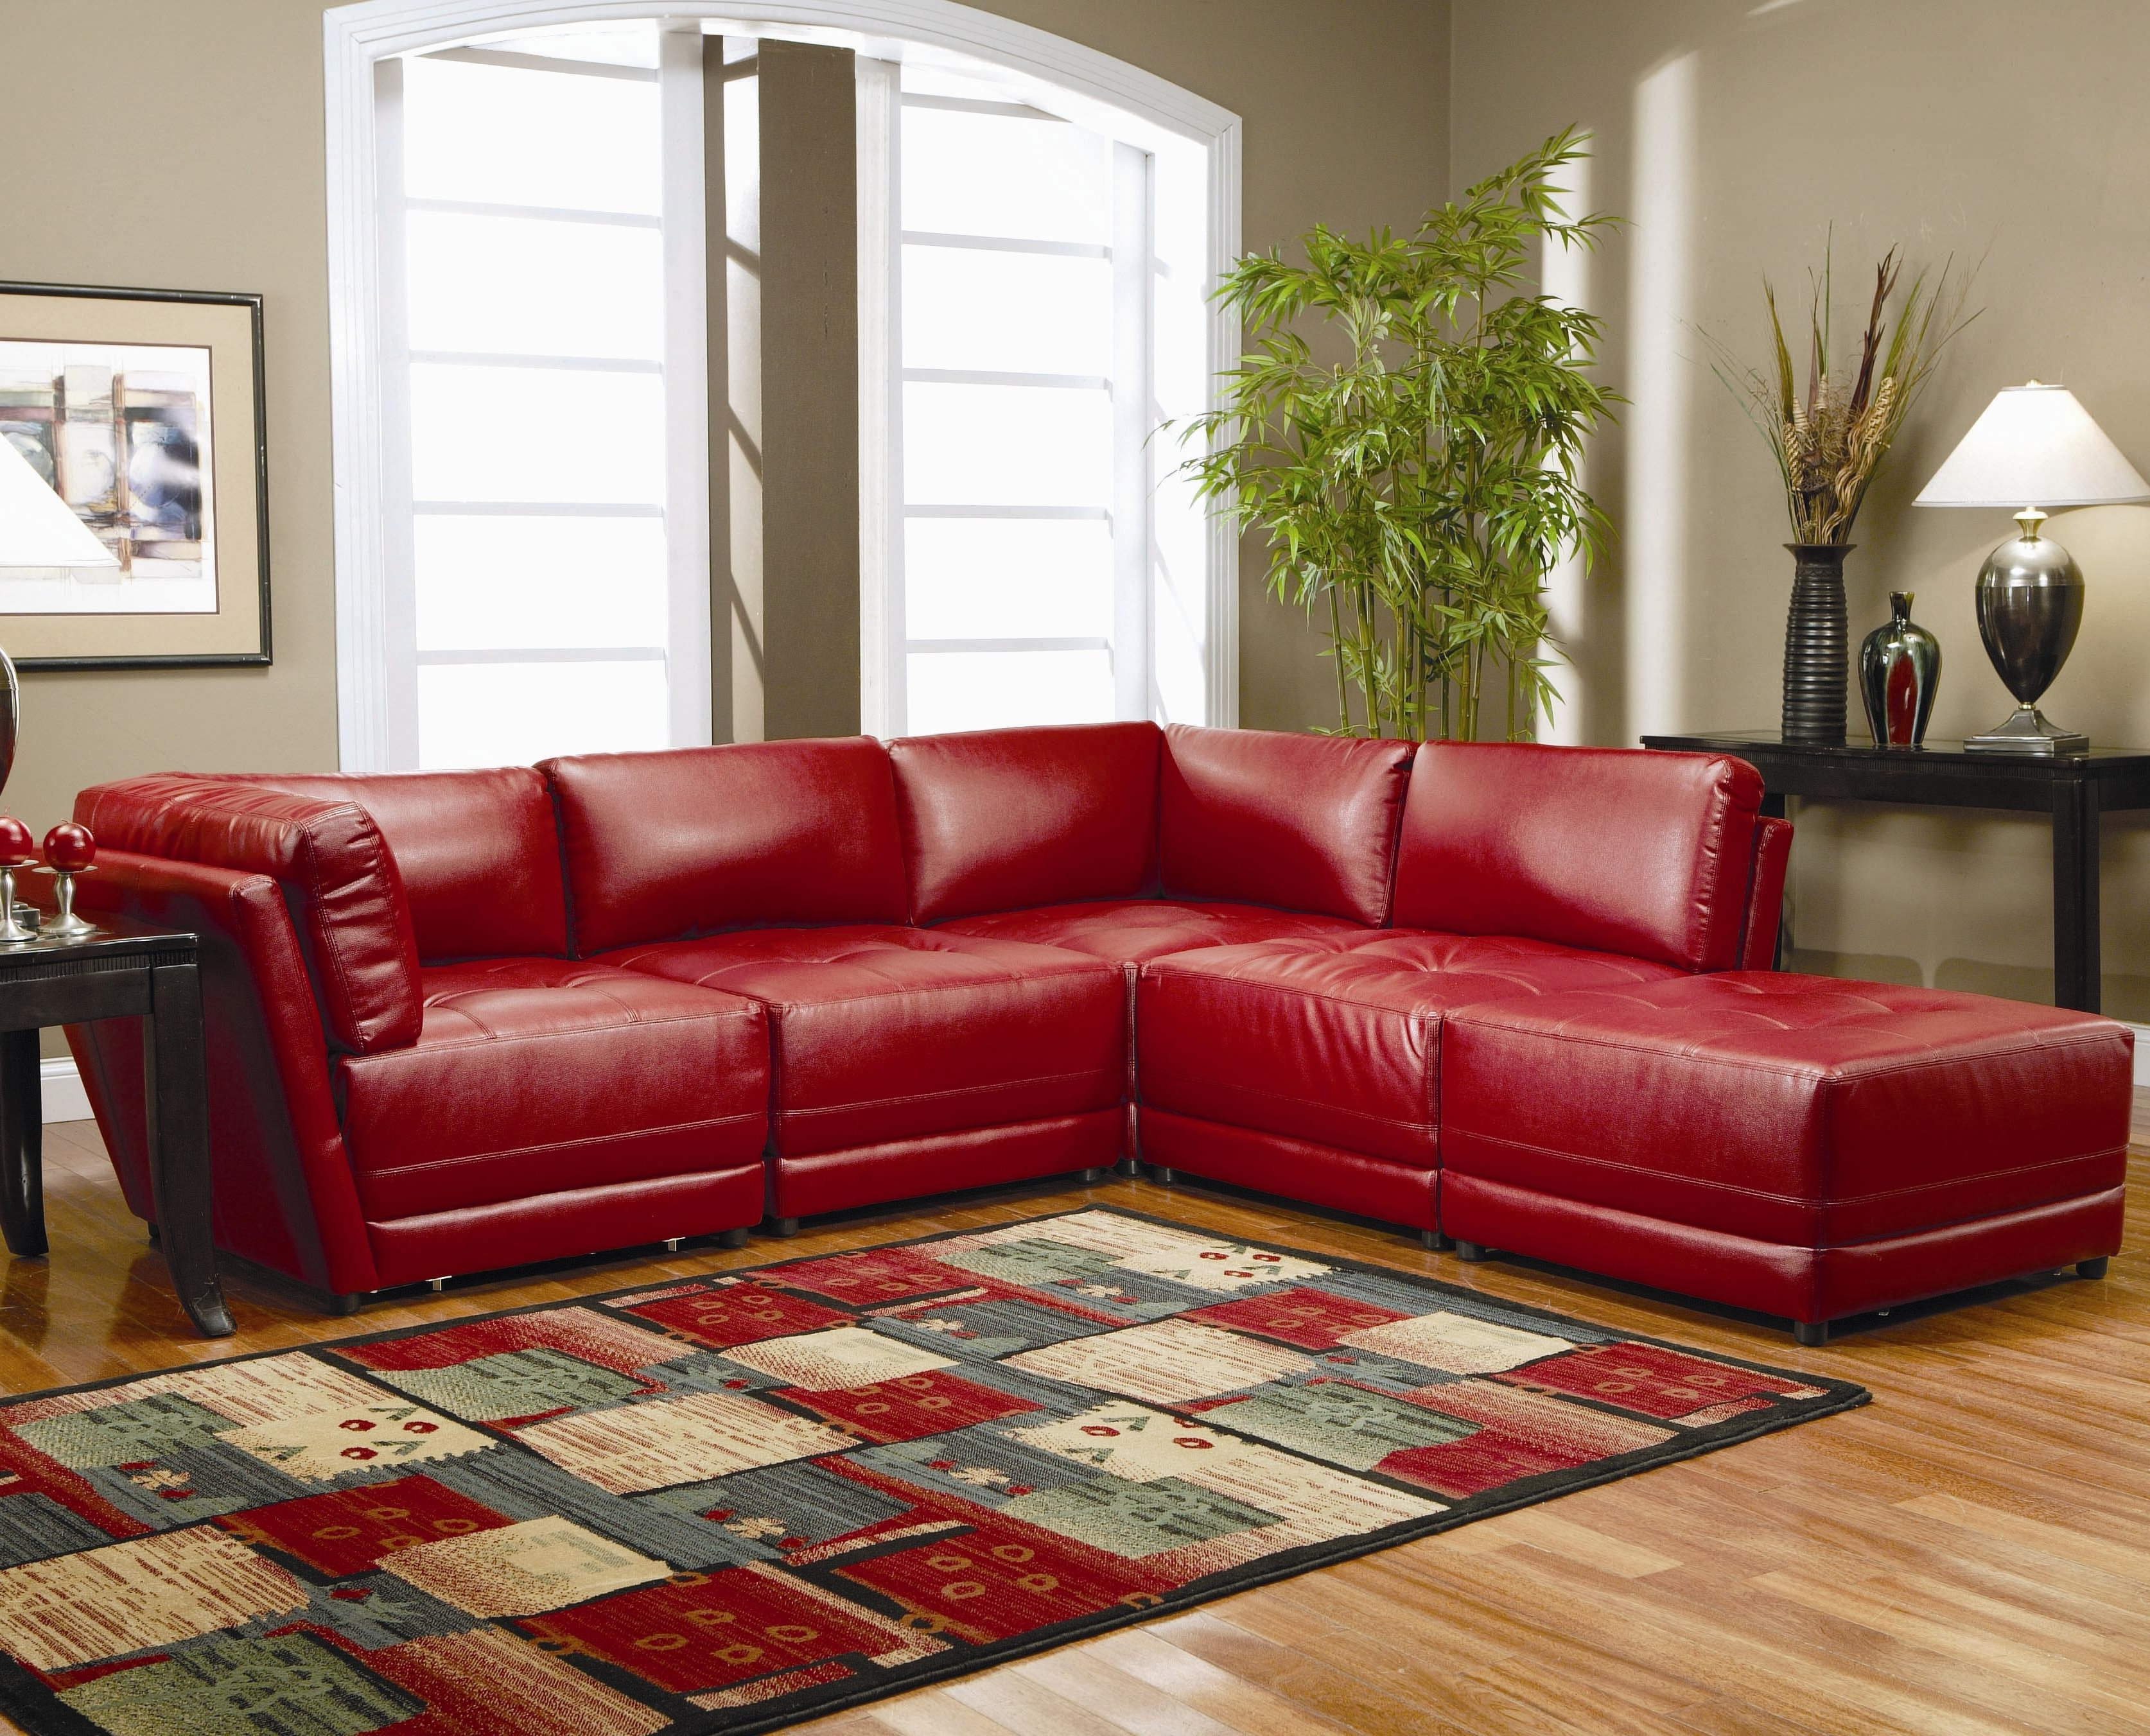 Red Leather Sectionals With Chaise With Regard To Famous Warm Red Leather Sectional L Shaped Sofa Design Ideas For Living (View 13 of 15)